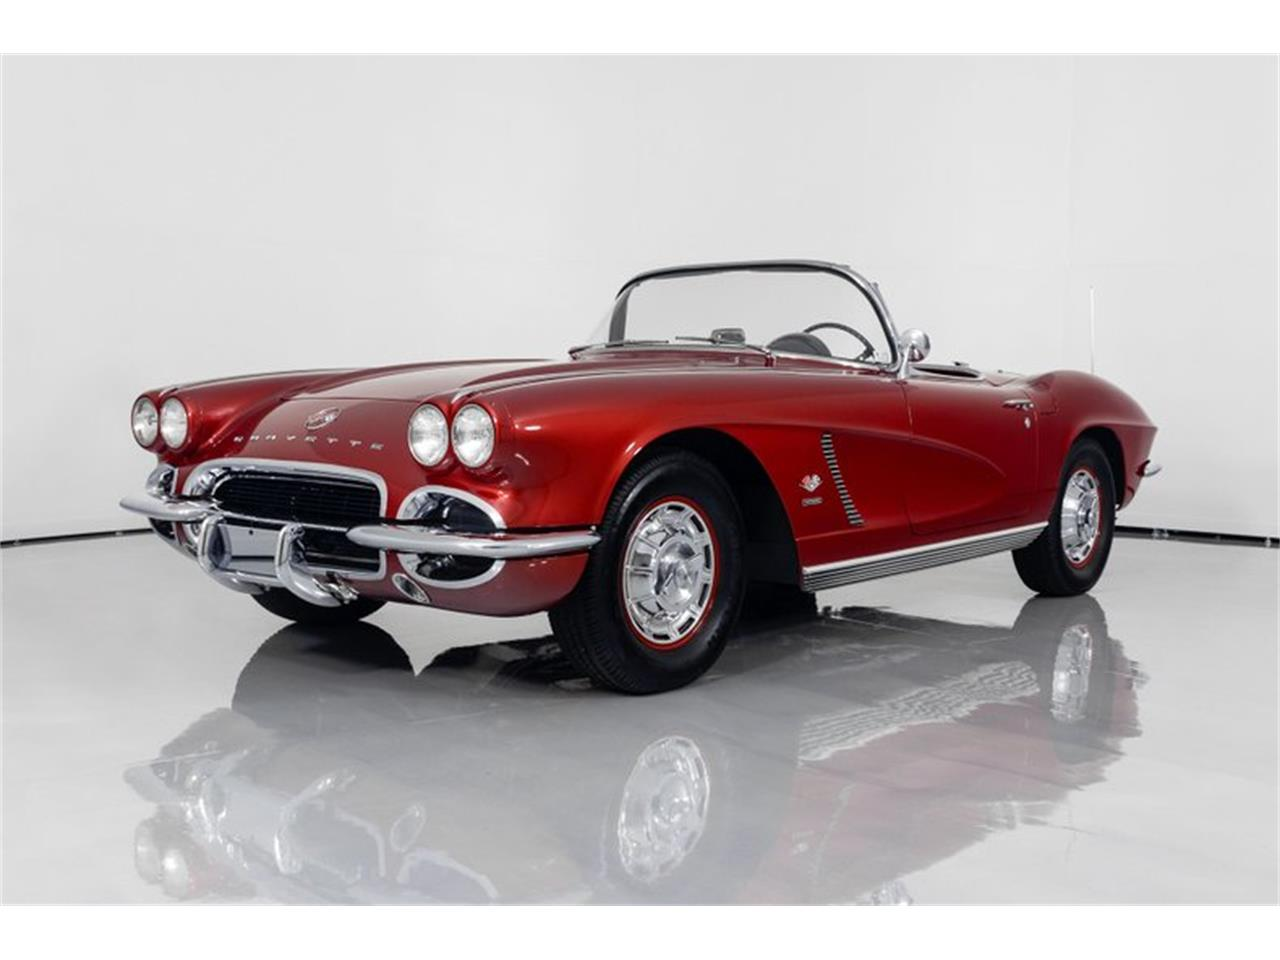 1962 Chevrolet Corvette (CC-1262270) for sale in St. Charles, Missouri